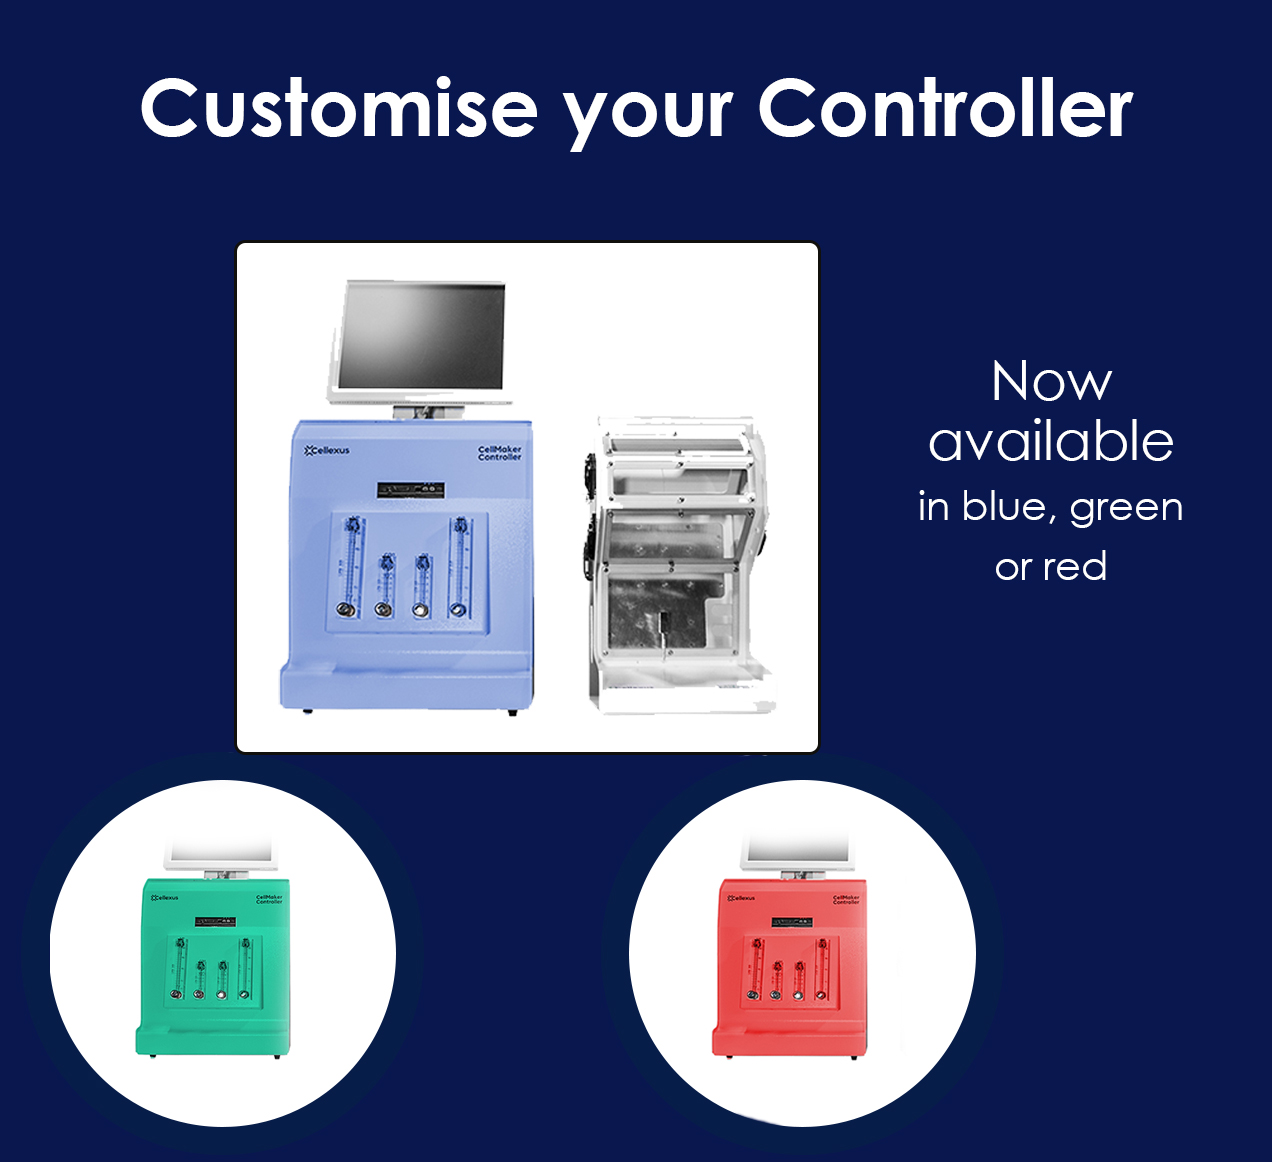 Customise your controller